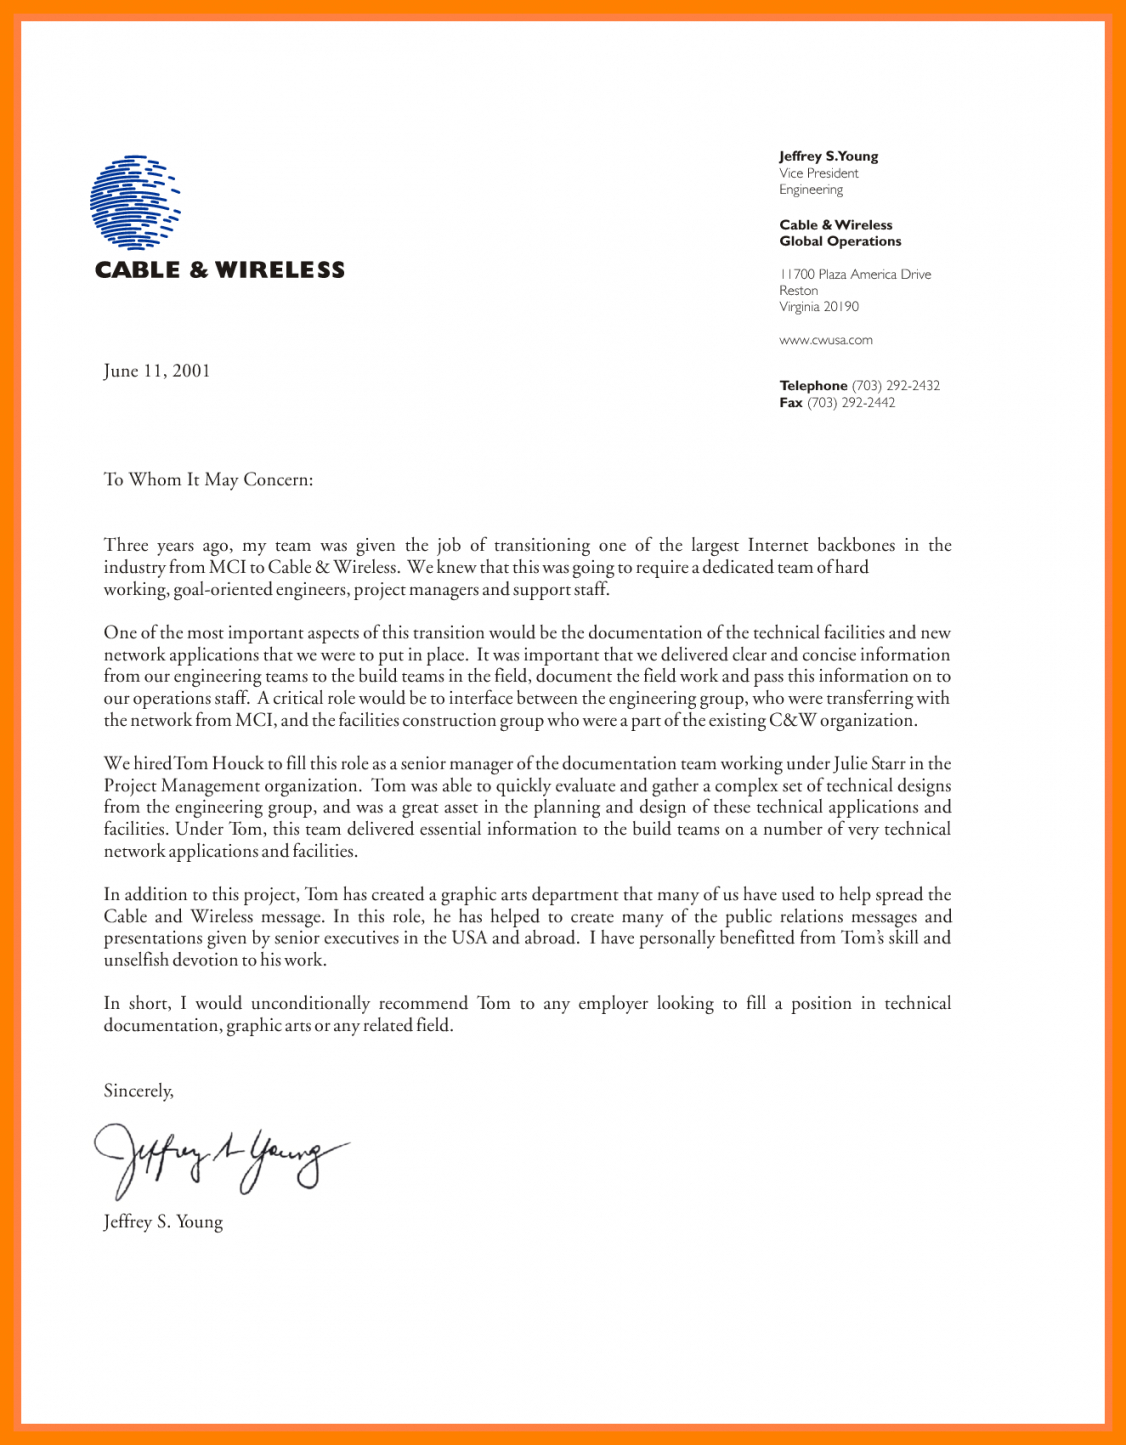 Scholarship reference letter template examples letter templates scholarship reference letter template 18 sample reference letter from employer thecheapjerseys Choice Image